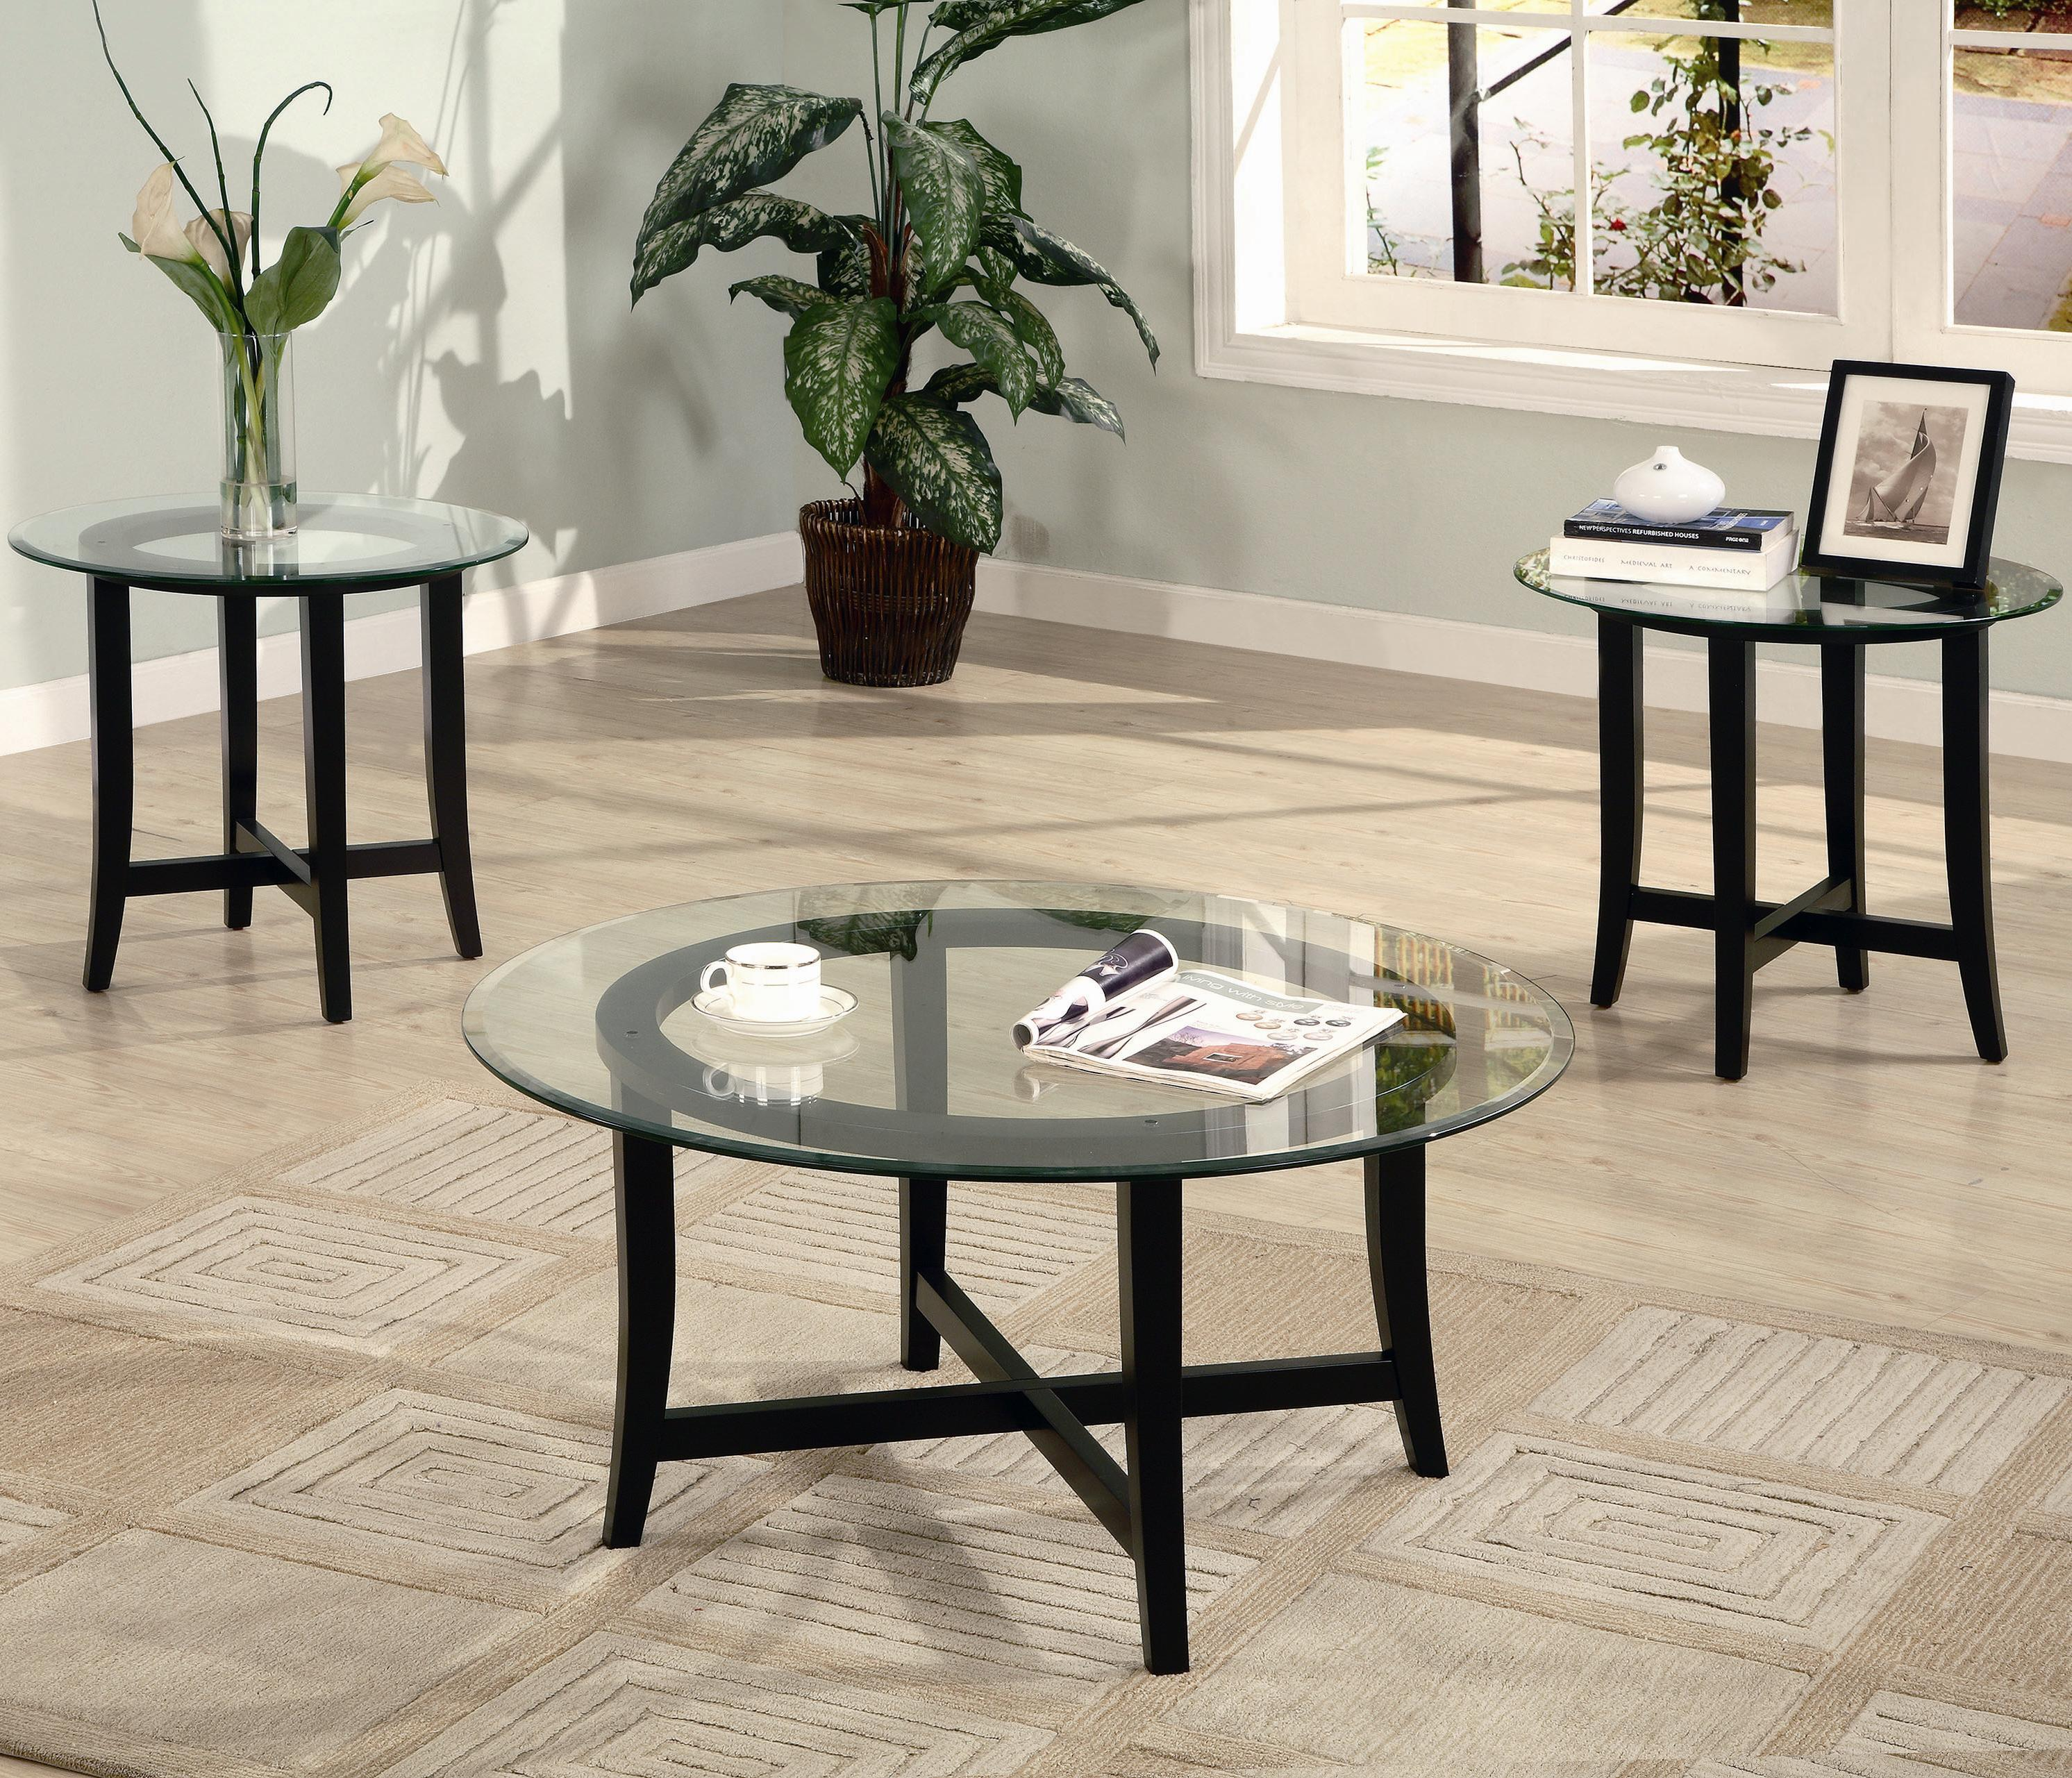 Coaster Occasional Table Sets Contemporary 3 Piece Occasional Table Set  With Glass Tops   Value City Furniture   Occasional Groups